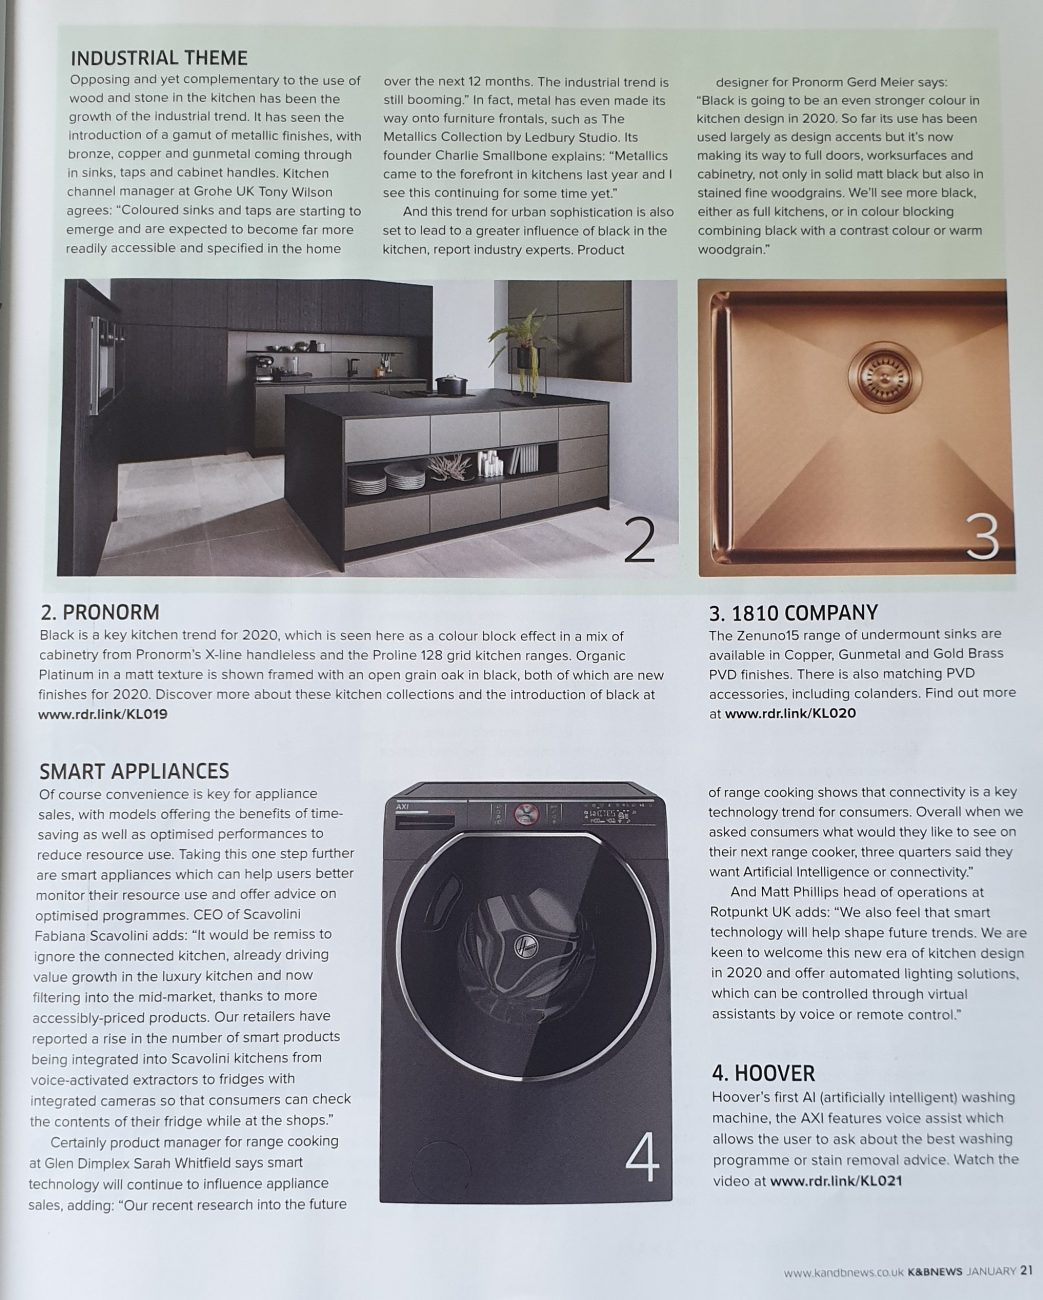 Article on kitchen trends 2020 in kitchens & bathrooms news magazine